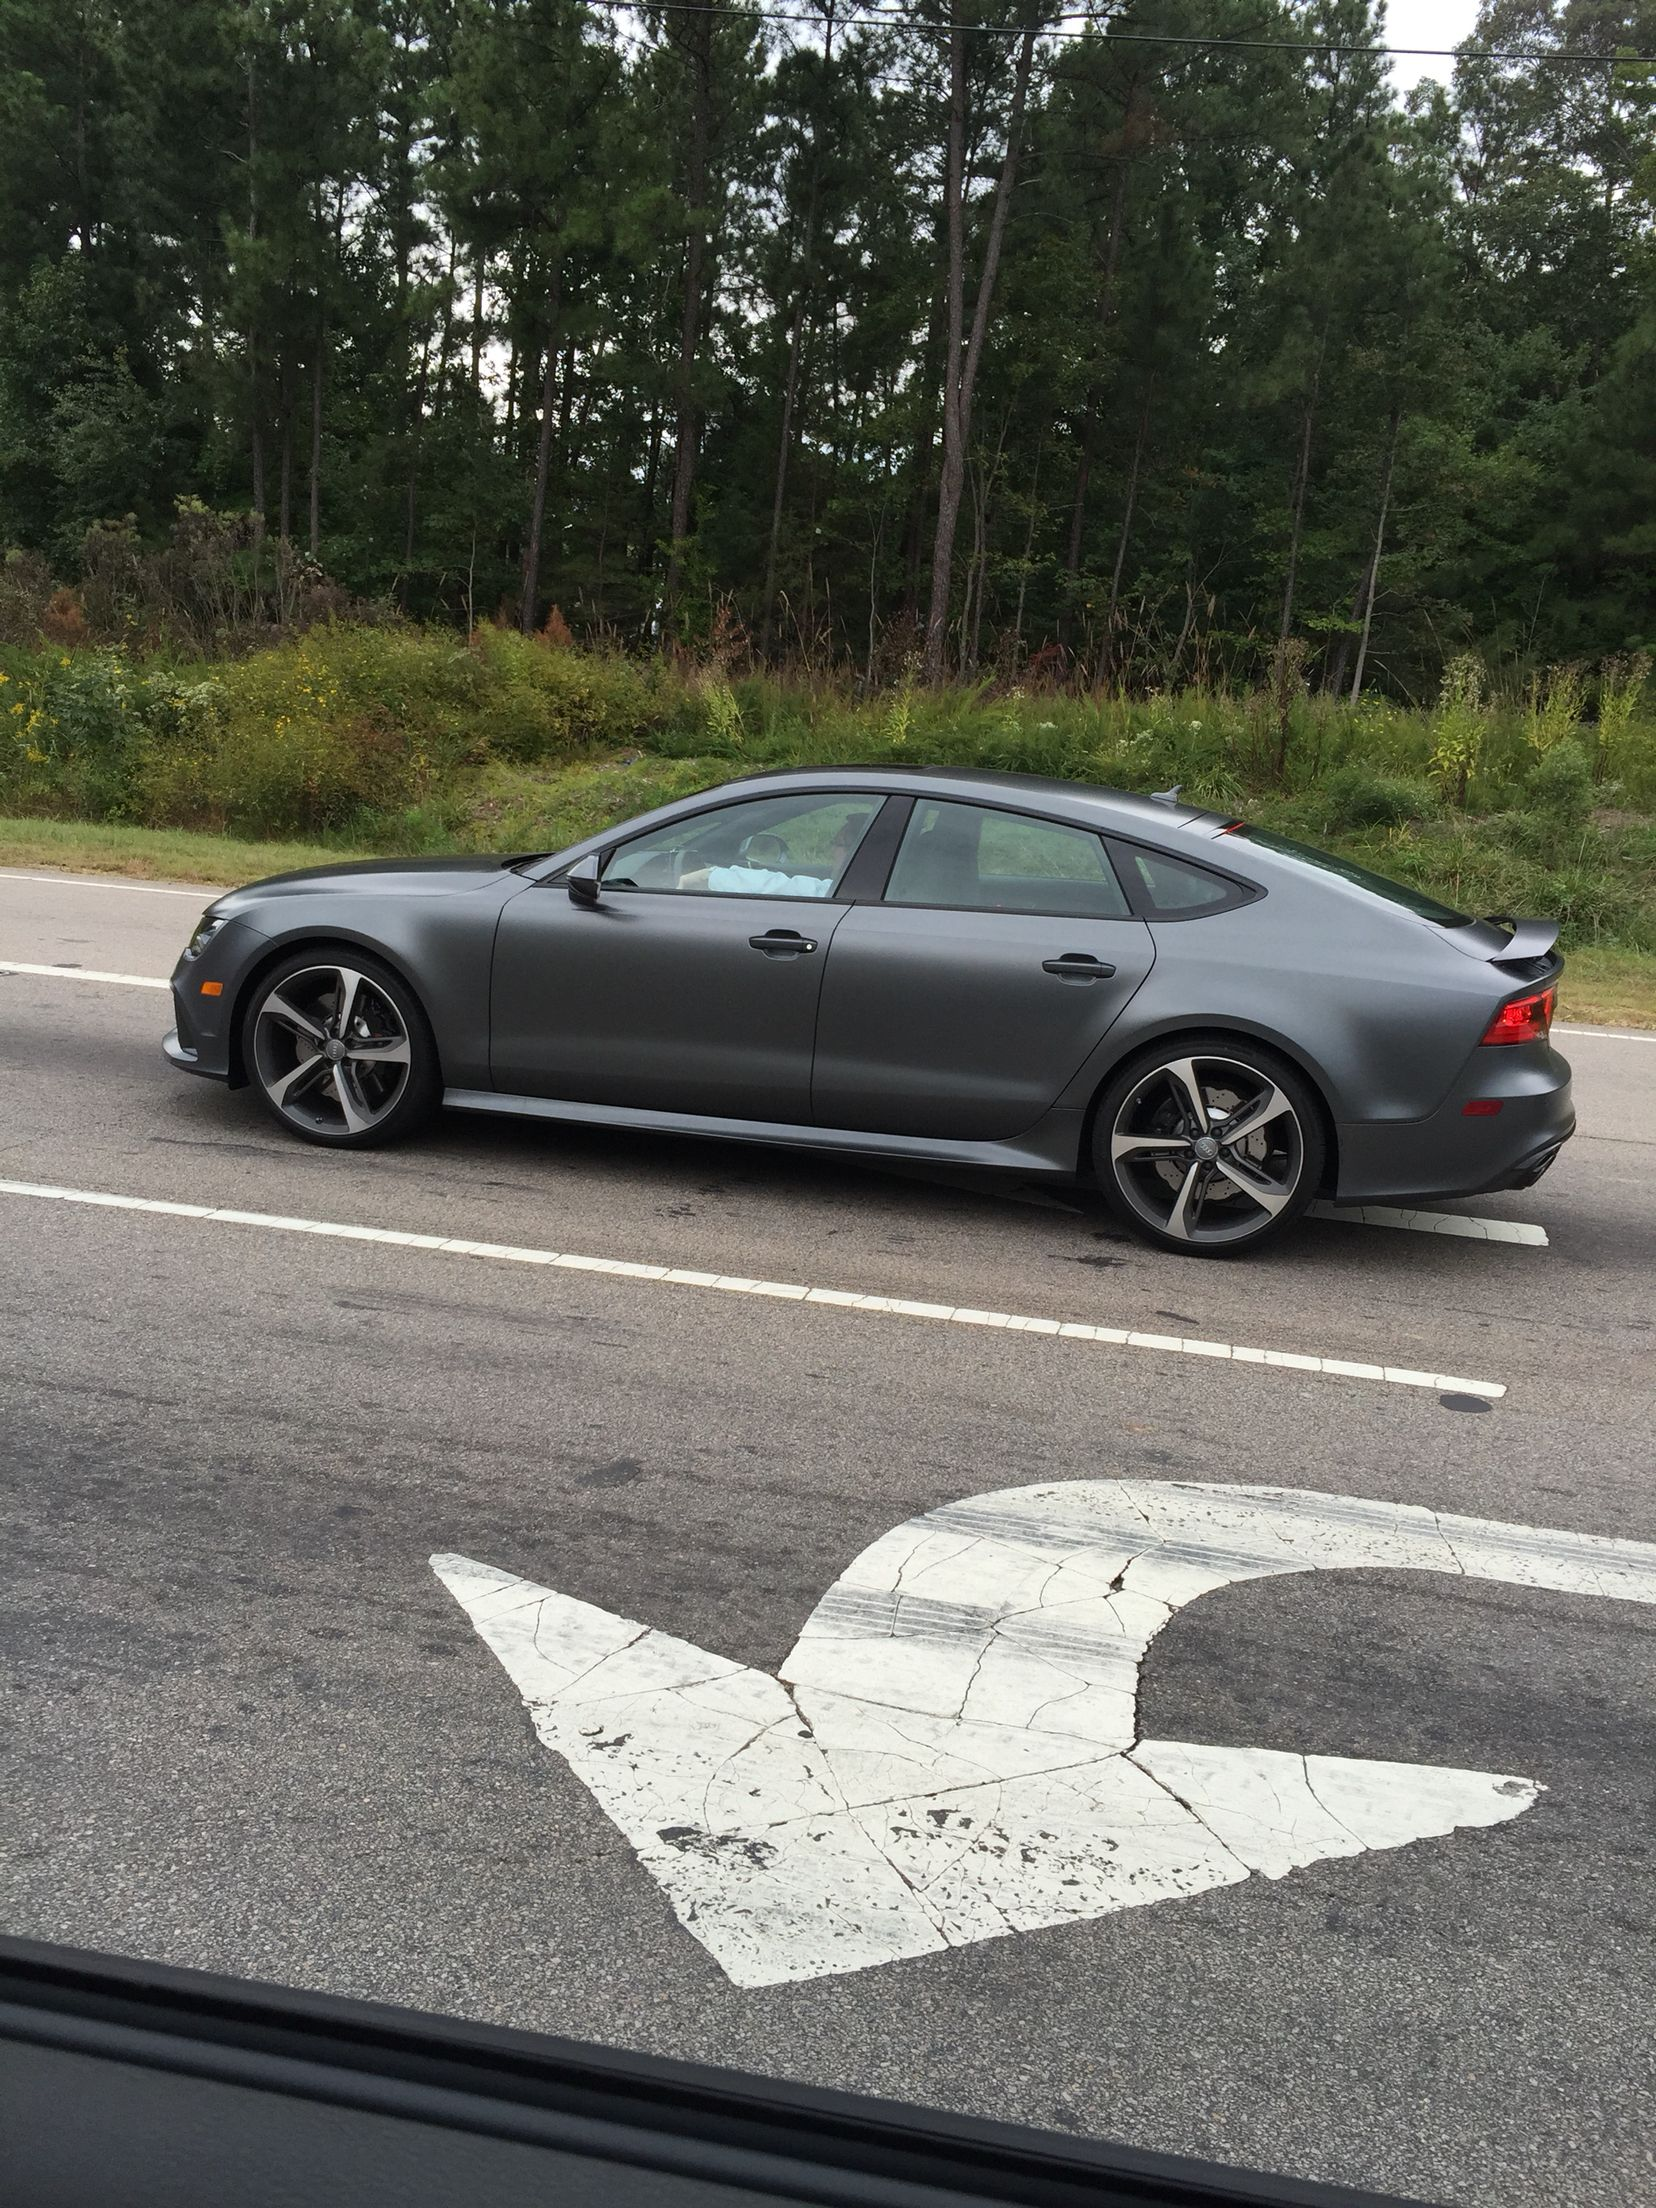 Audi A5 Sportback 2013 Matt Grau Wiring Library Rs7 Matte Grey Stephen Colbert Car Wrap Stuff